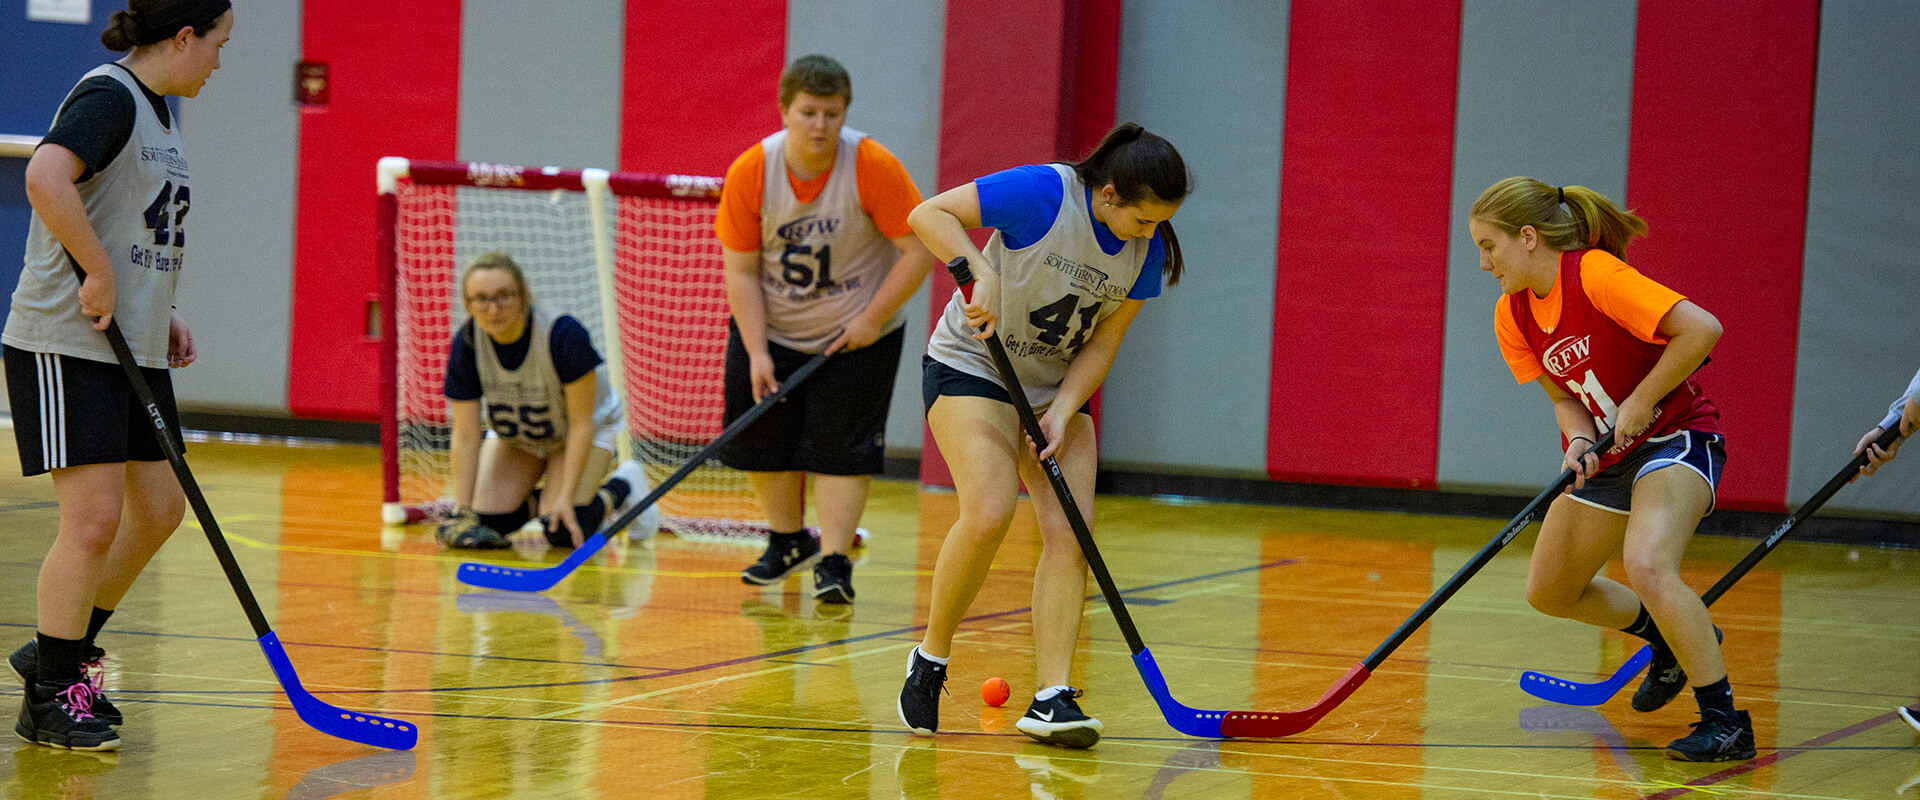 students playing hockey in gym